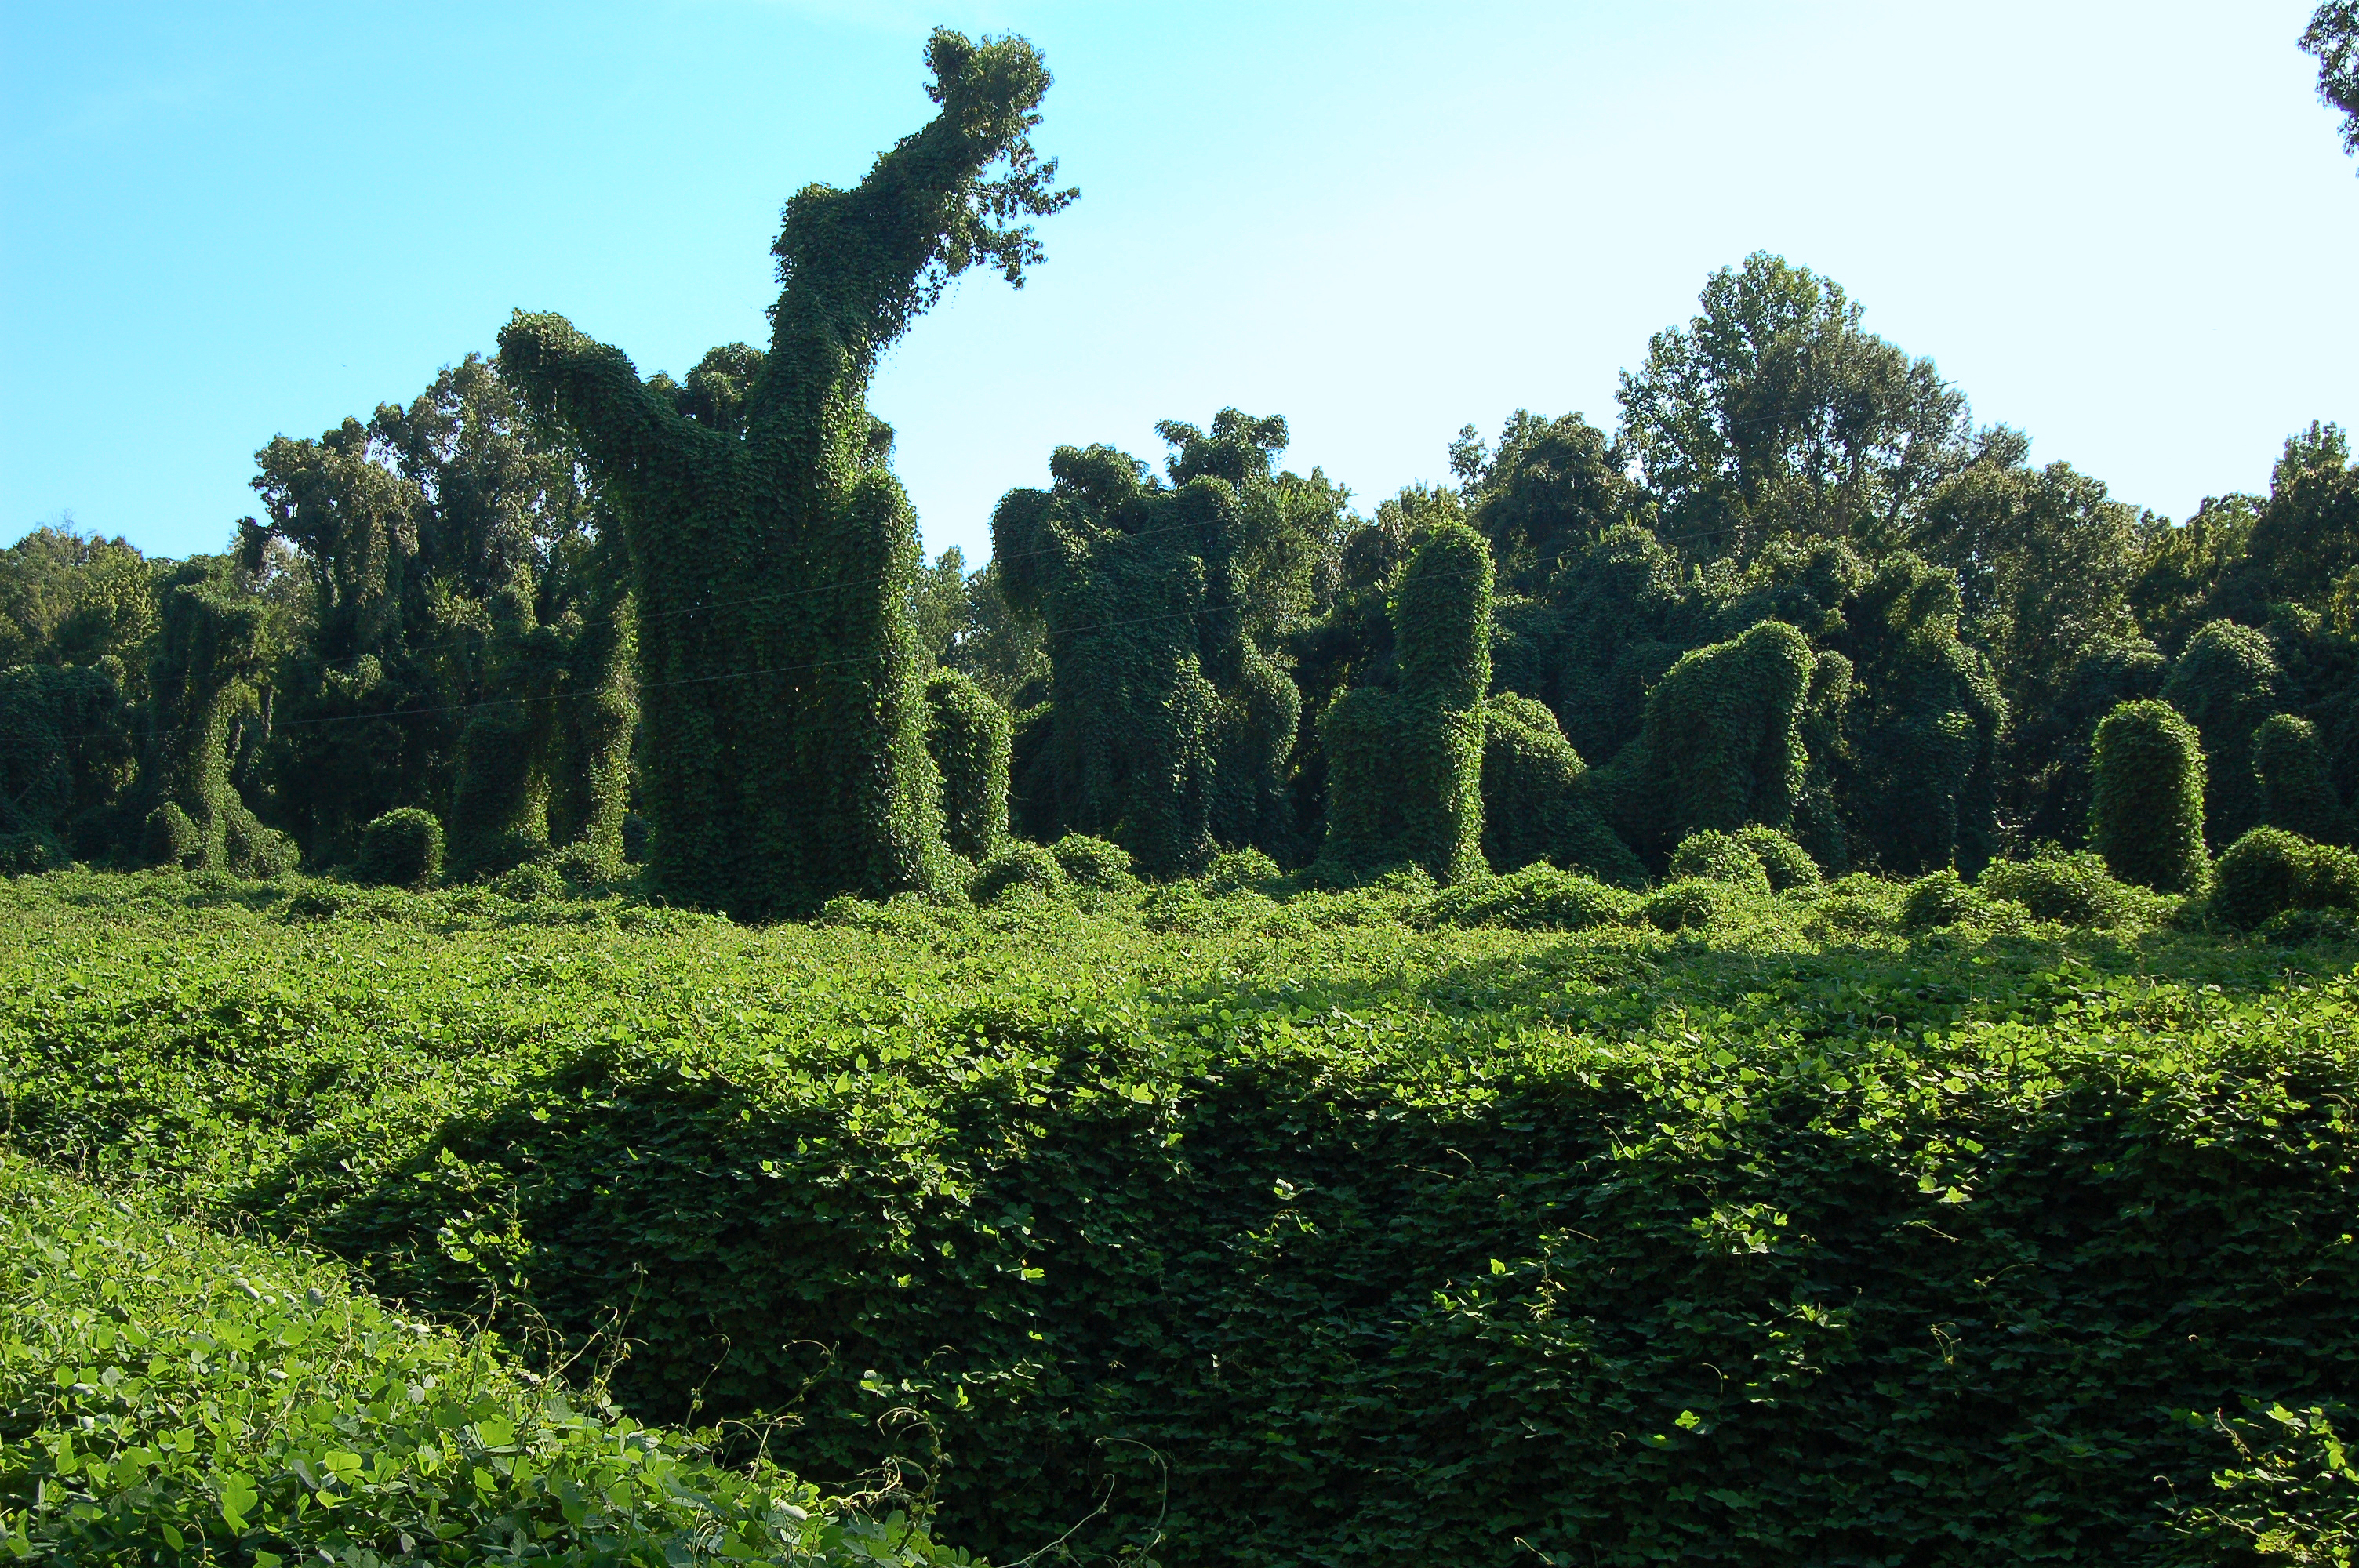 Picture of kudzu-covered trees in a MIssissippi forest.